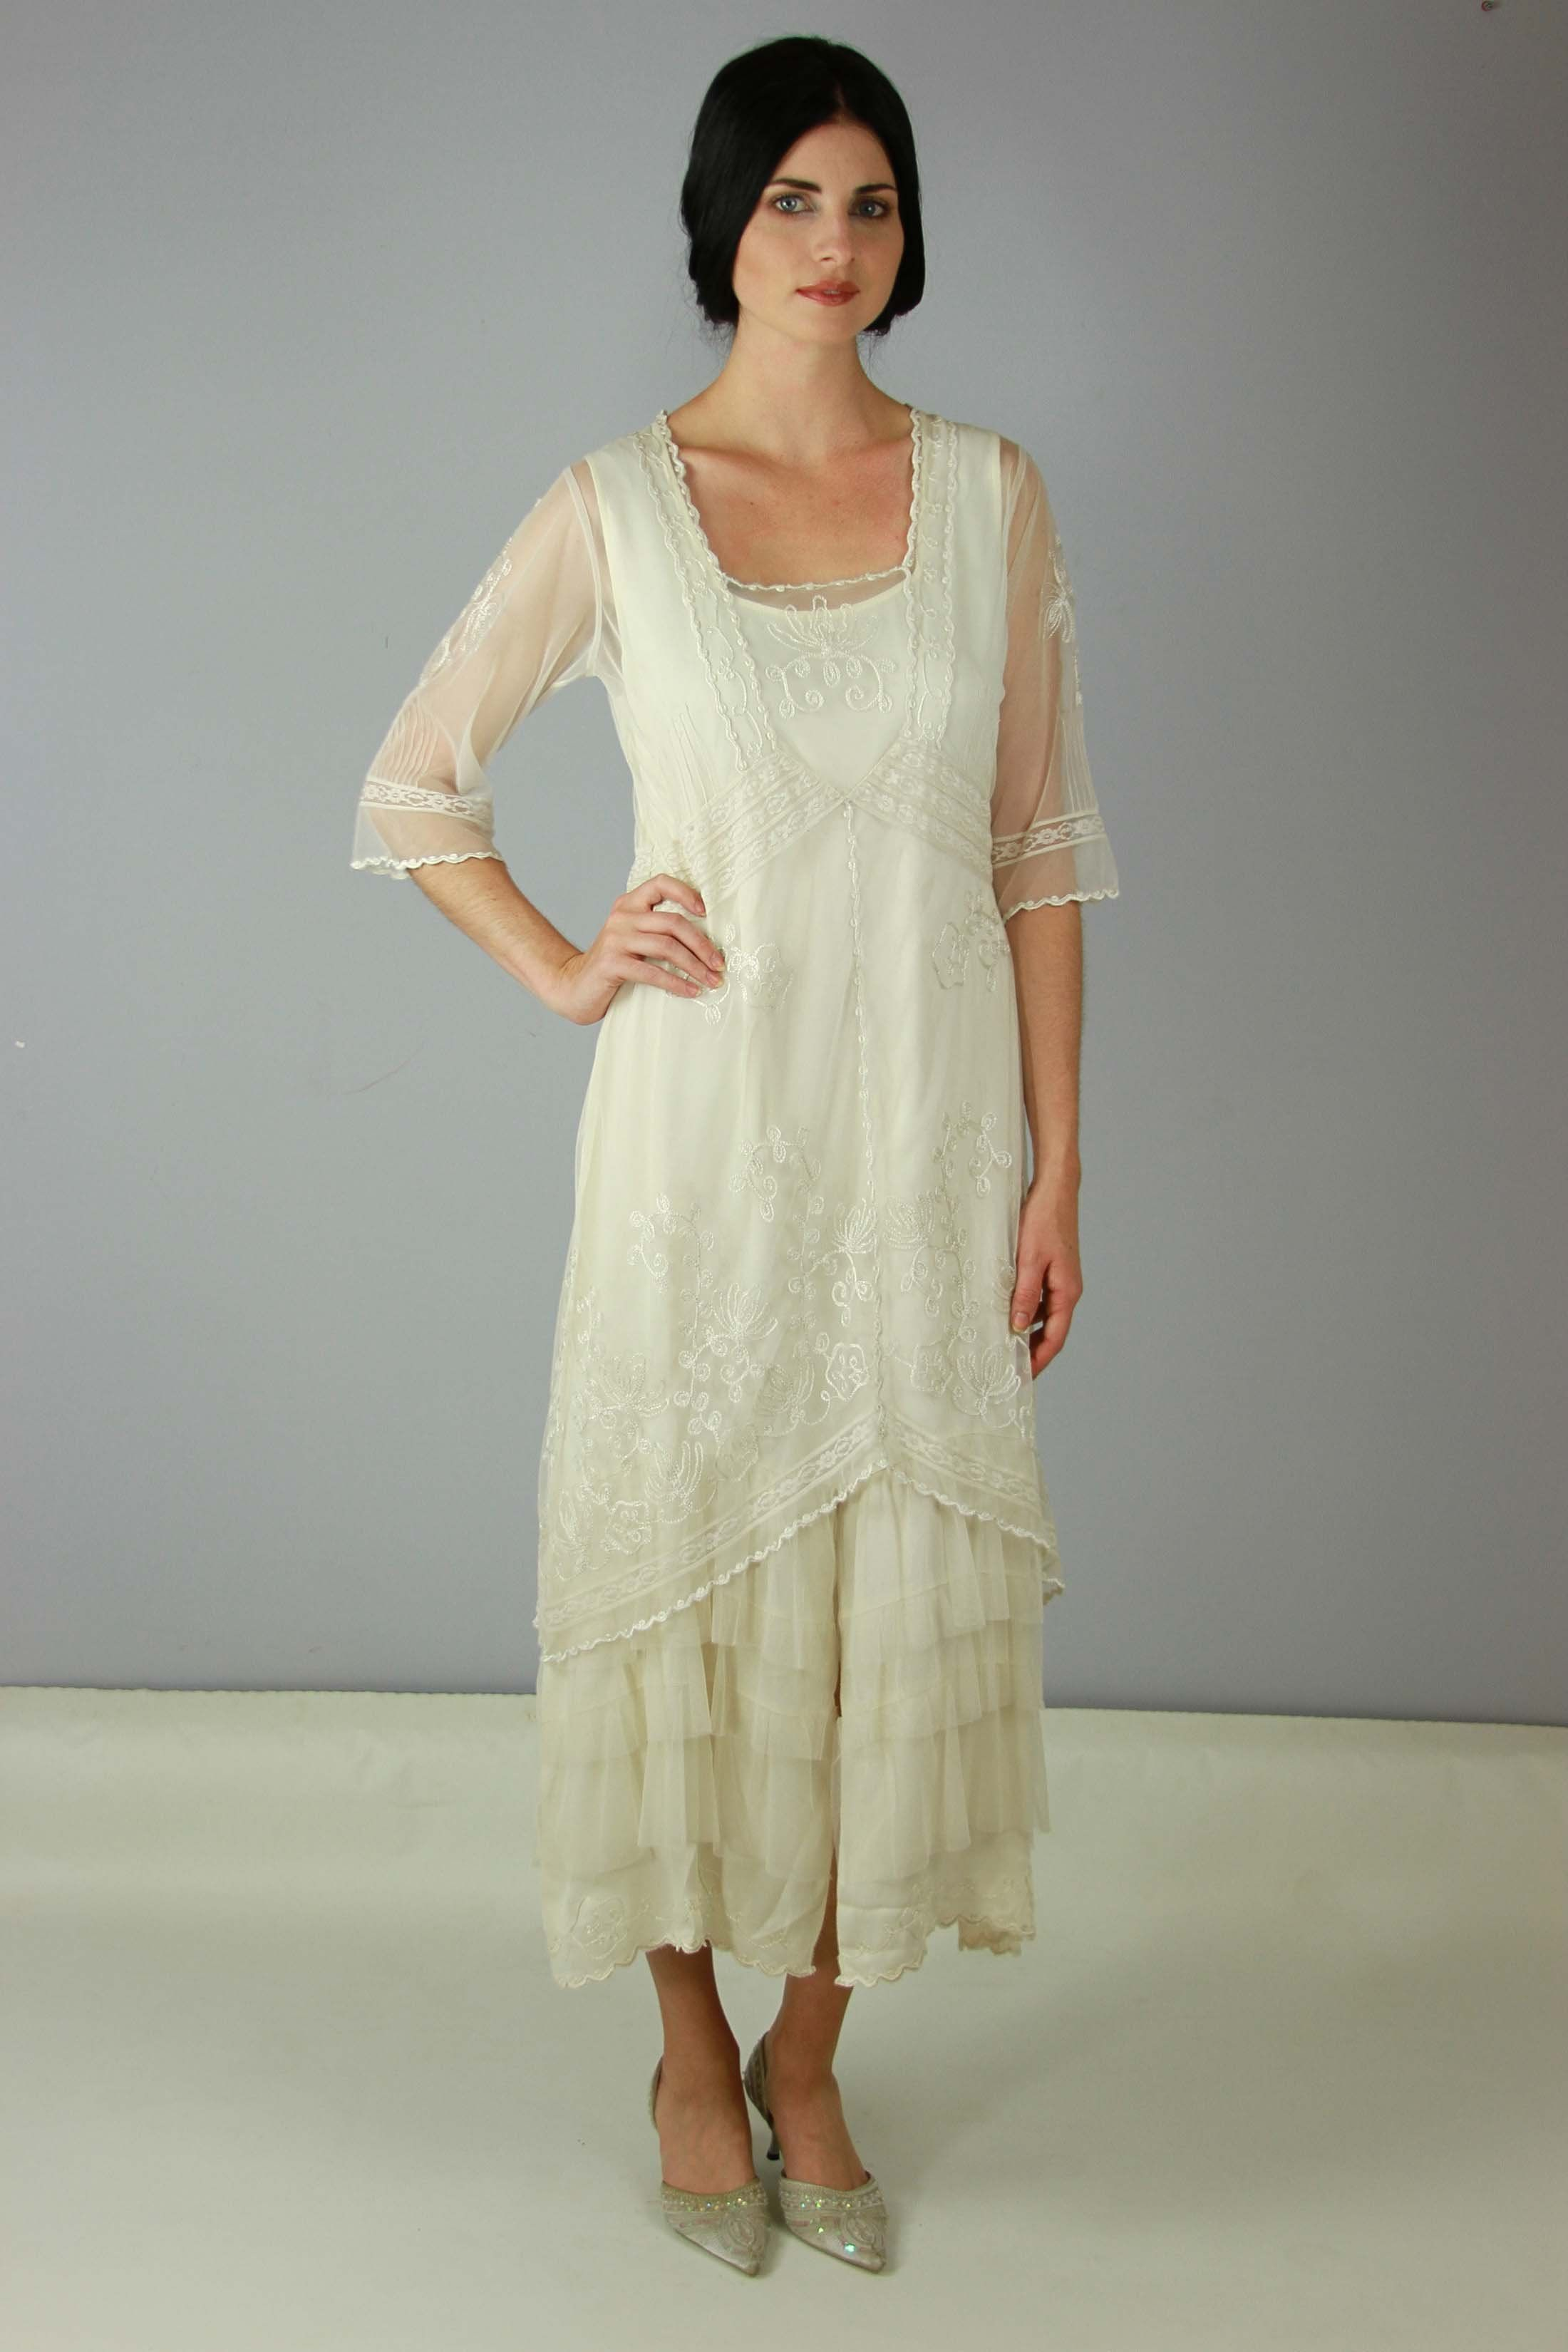 f6faf3113c9 1920s Plus Size Wedding or Tea Dress  Titanic Tea Party Dress in Ivory by  Nataya  229.00 AT vintagedancer.com